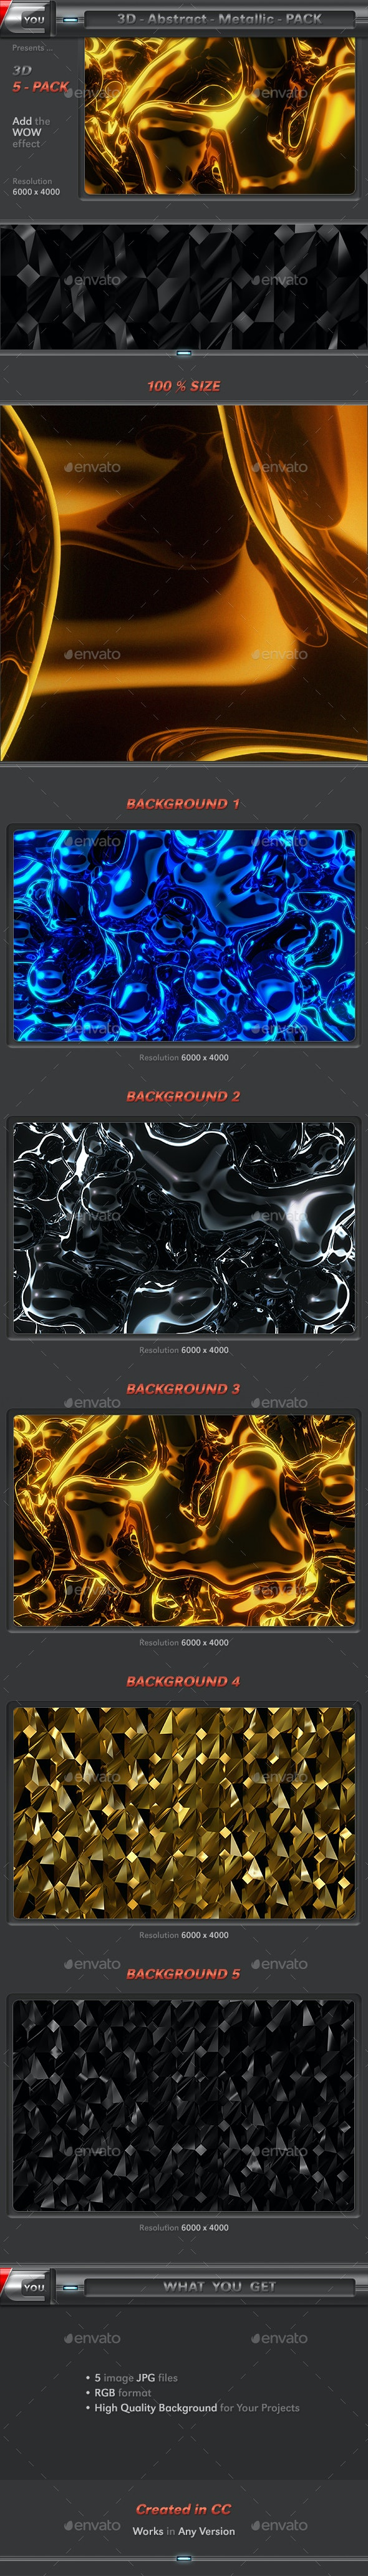 Abstract Metallic Pack - 3D Backgrounds